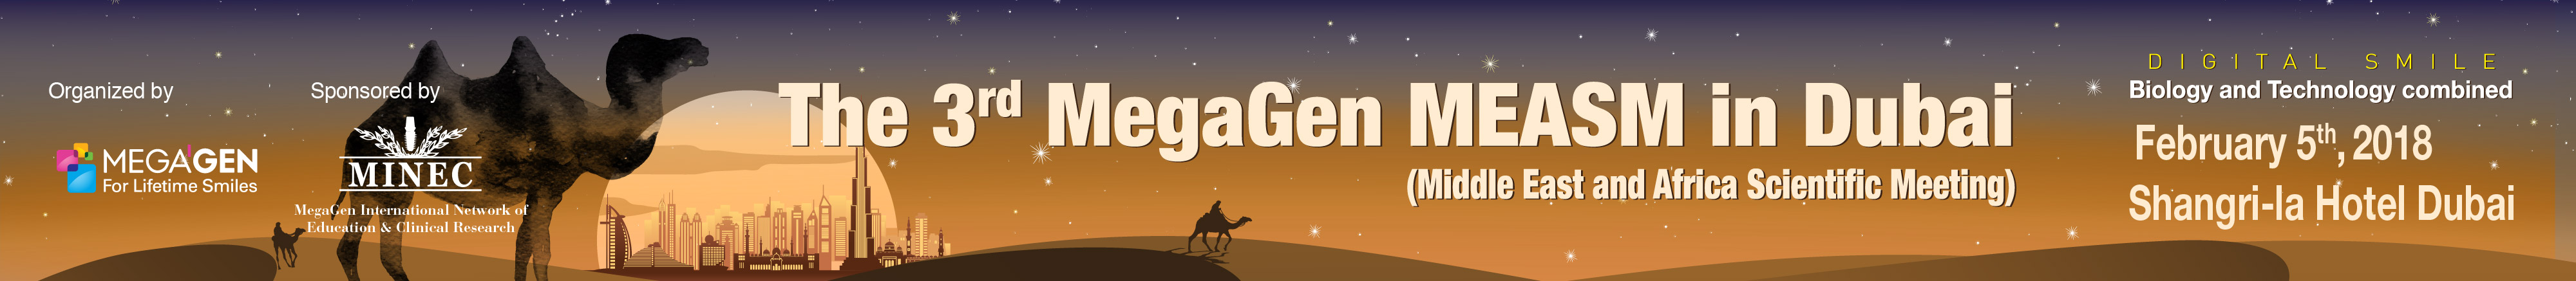 The 3rd MegaGen MEASM in Dubai